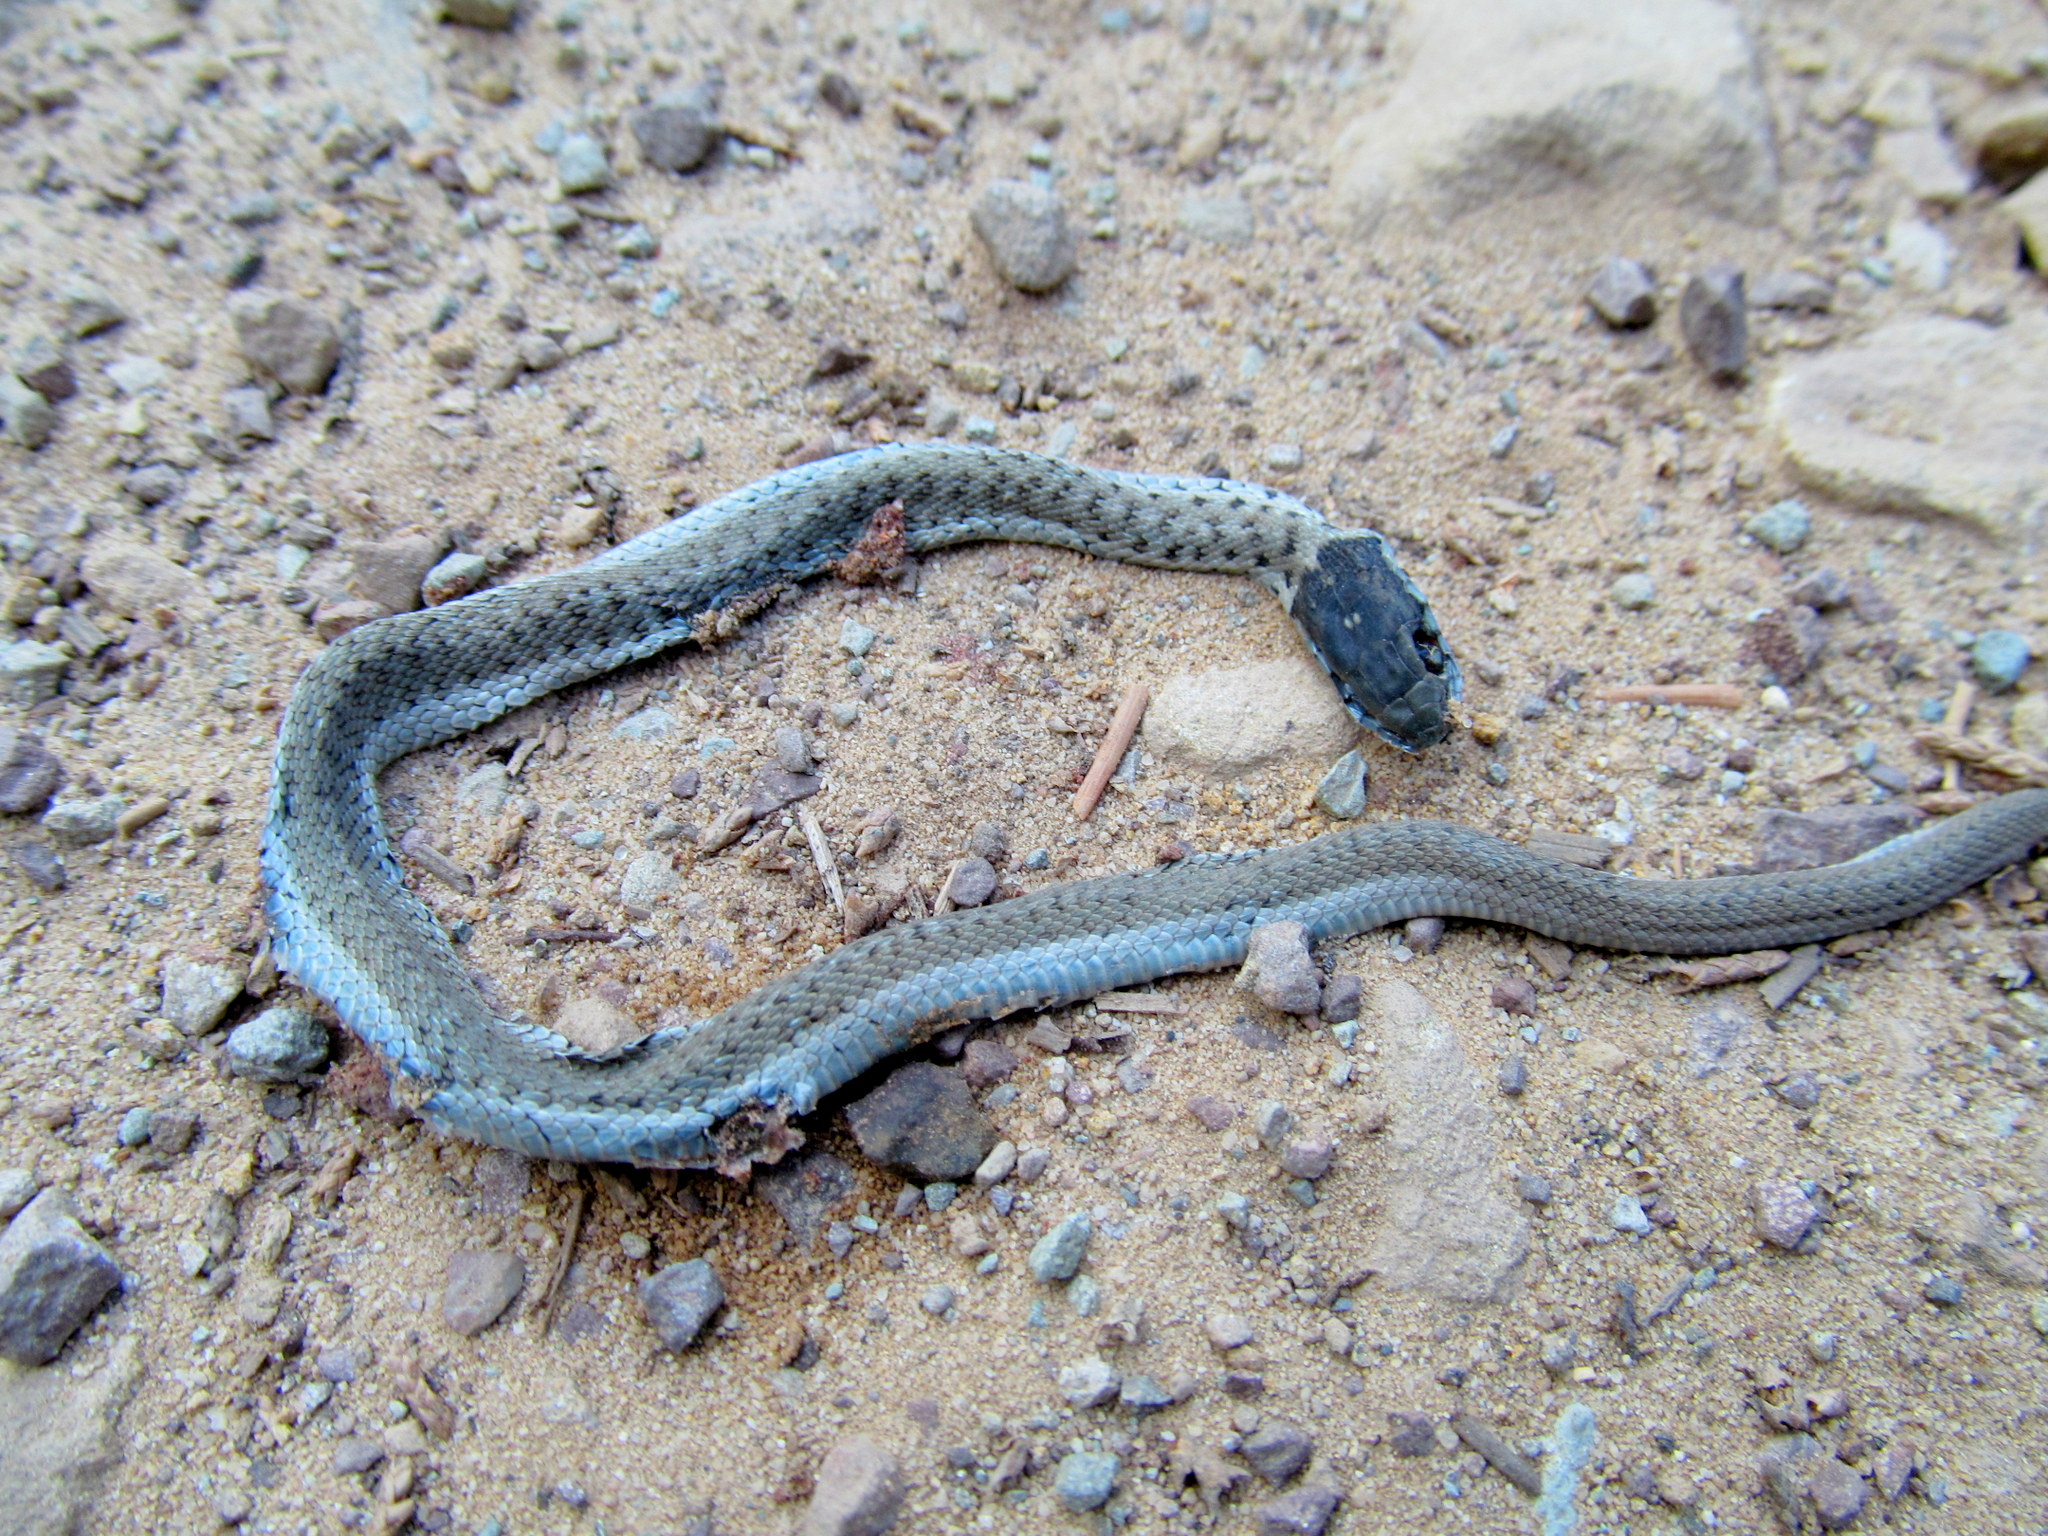 Photo: Tiny dead snake in the road